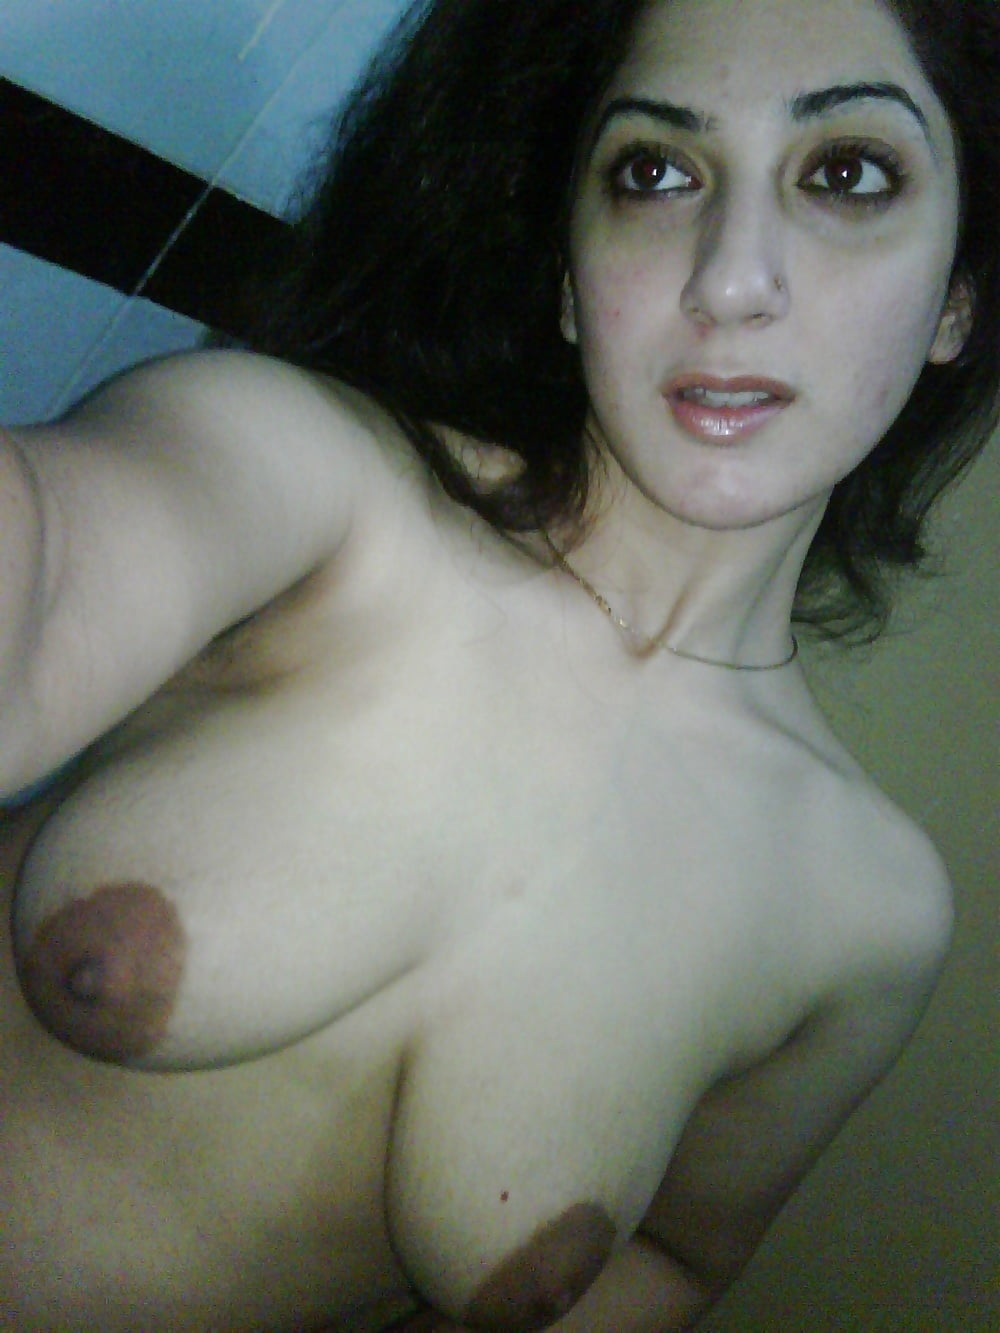 nude-iranian-women-pictures